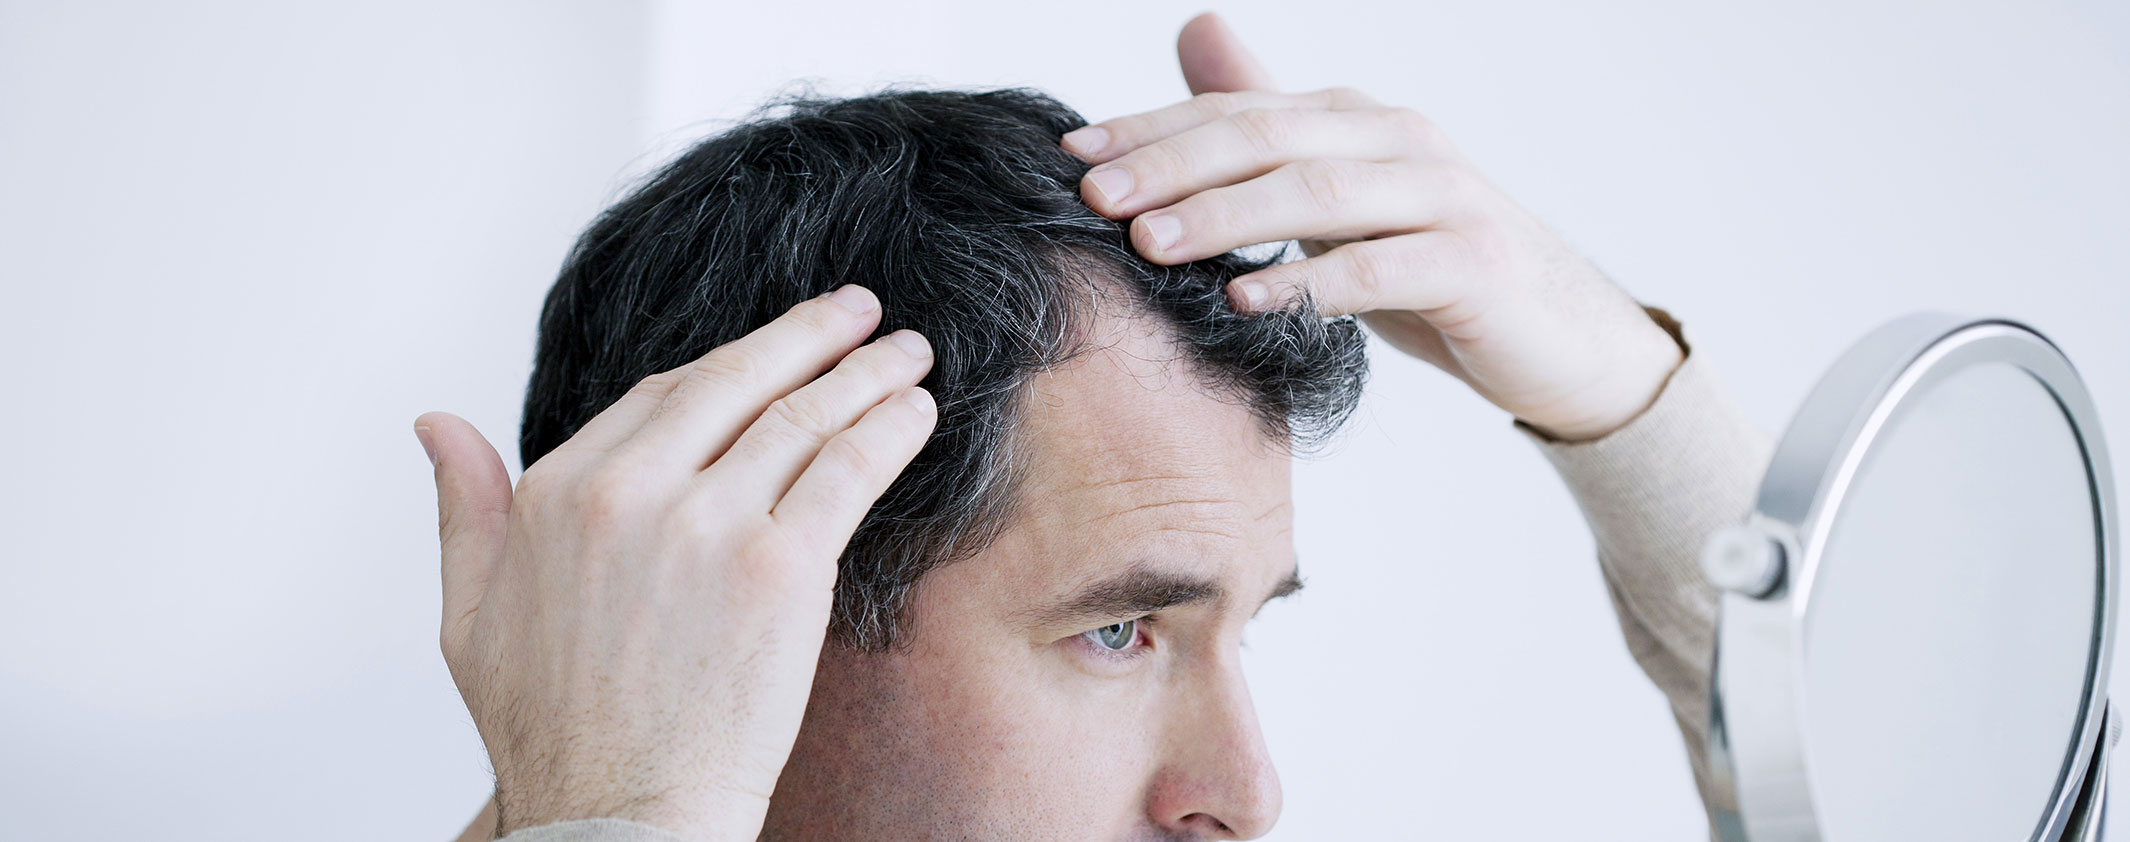 Stem Cell Therapy for Hair Loss | Dynamic Stem Cell Therapy